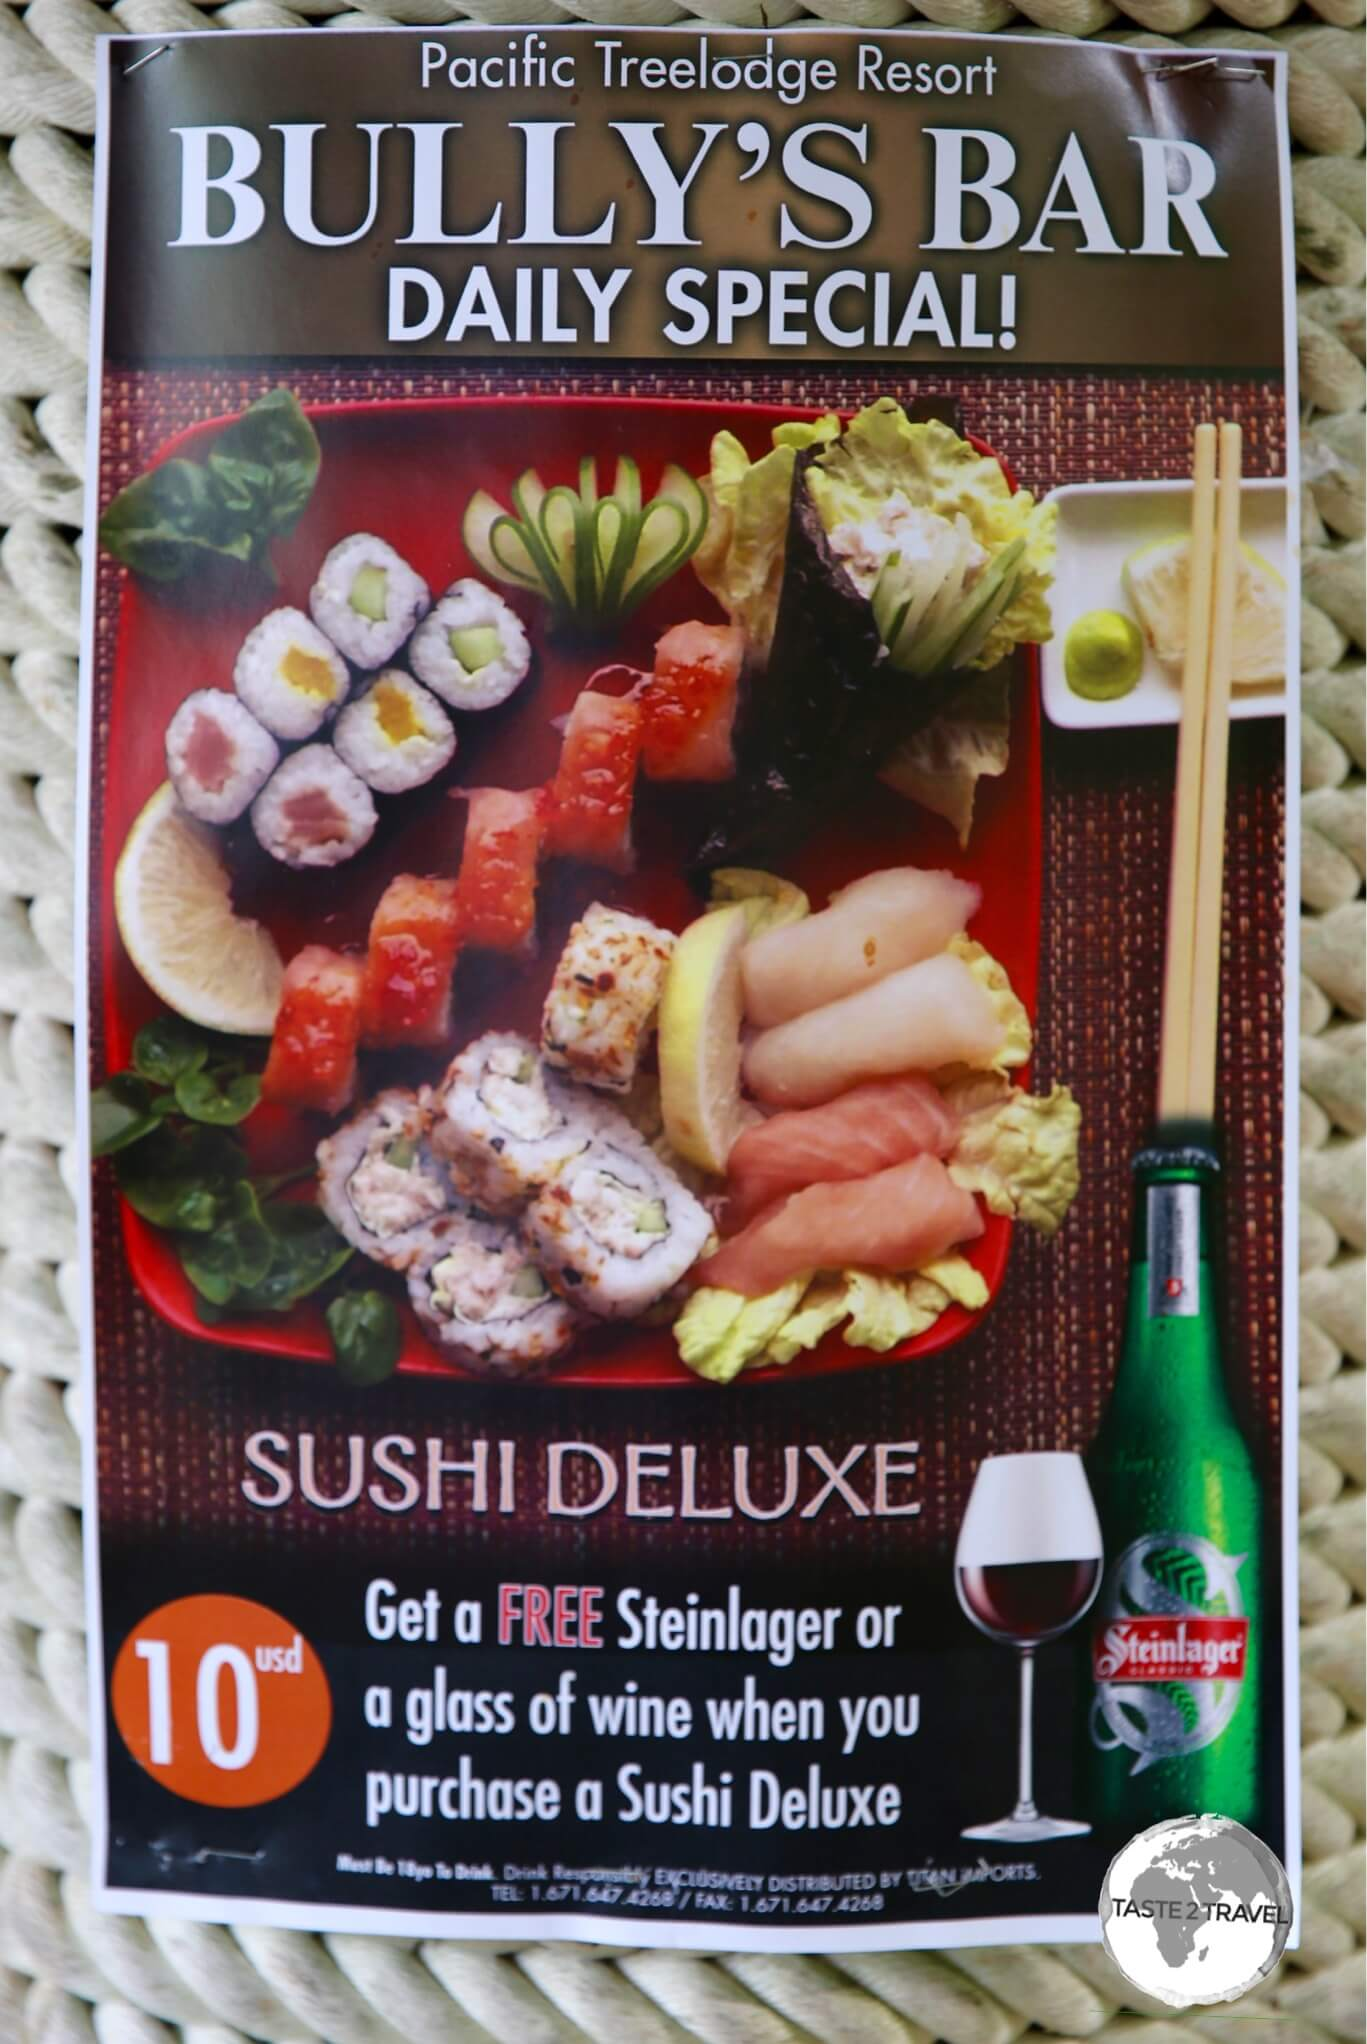 The awesome Sushi Deluxe special at Bully's.